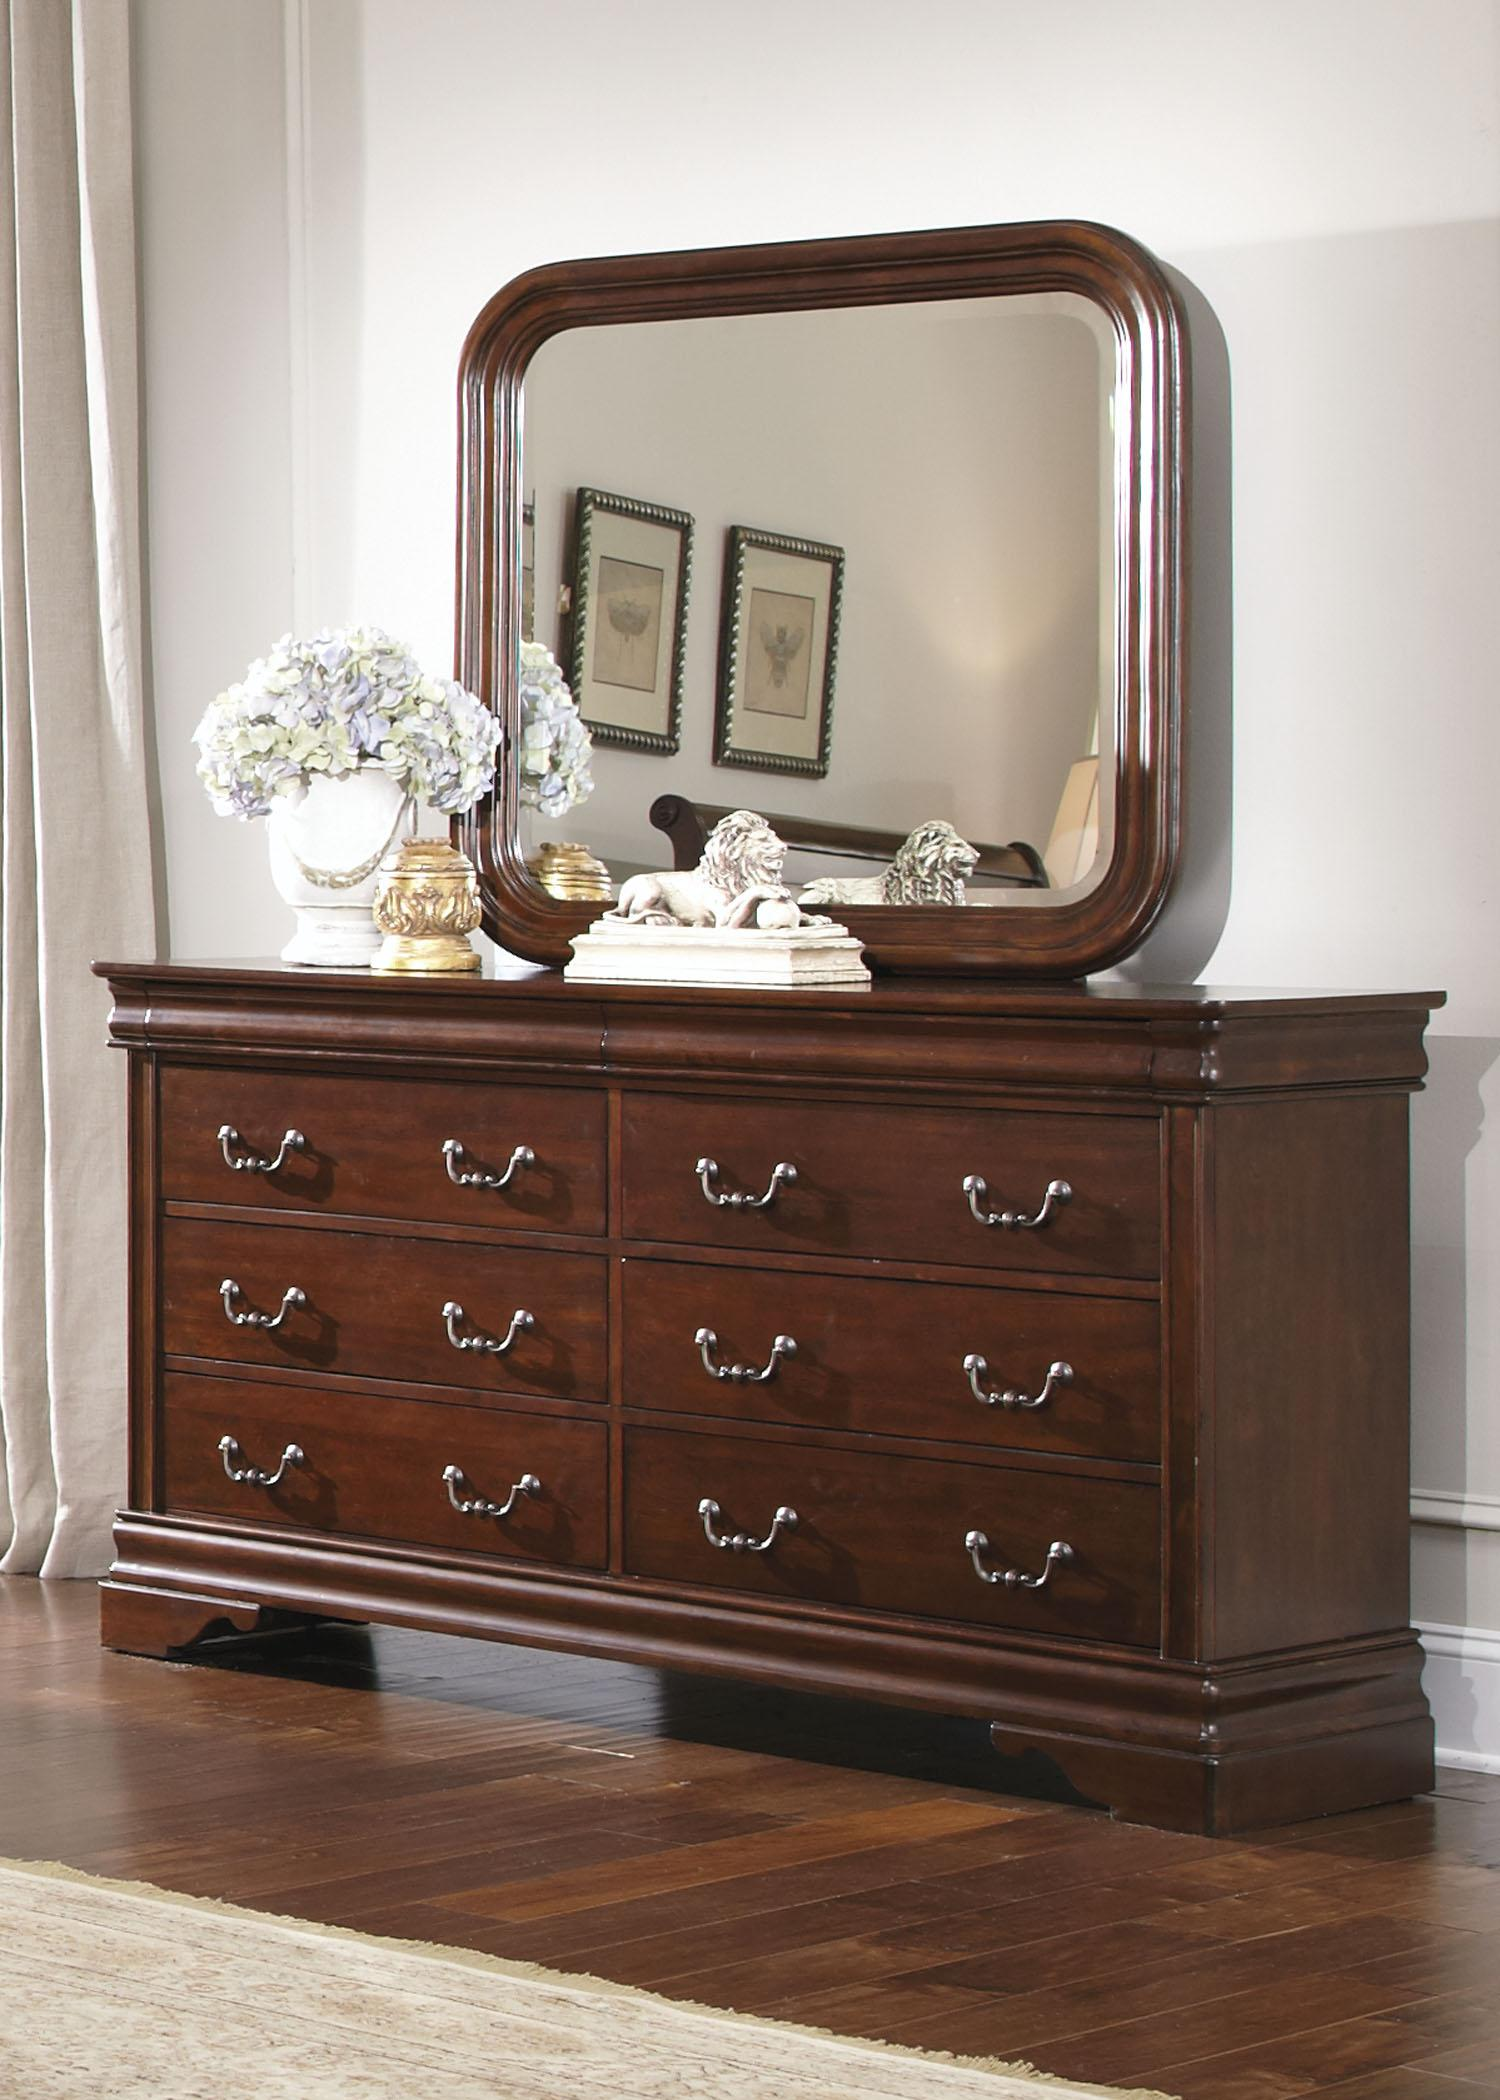 Liberty Furniture Carriage Court Dresser & Mirror - Item Number: 709-BR-SET50